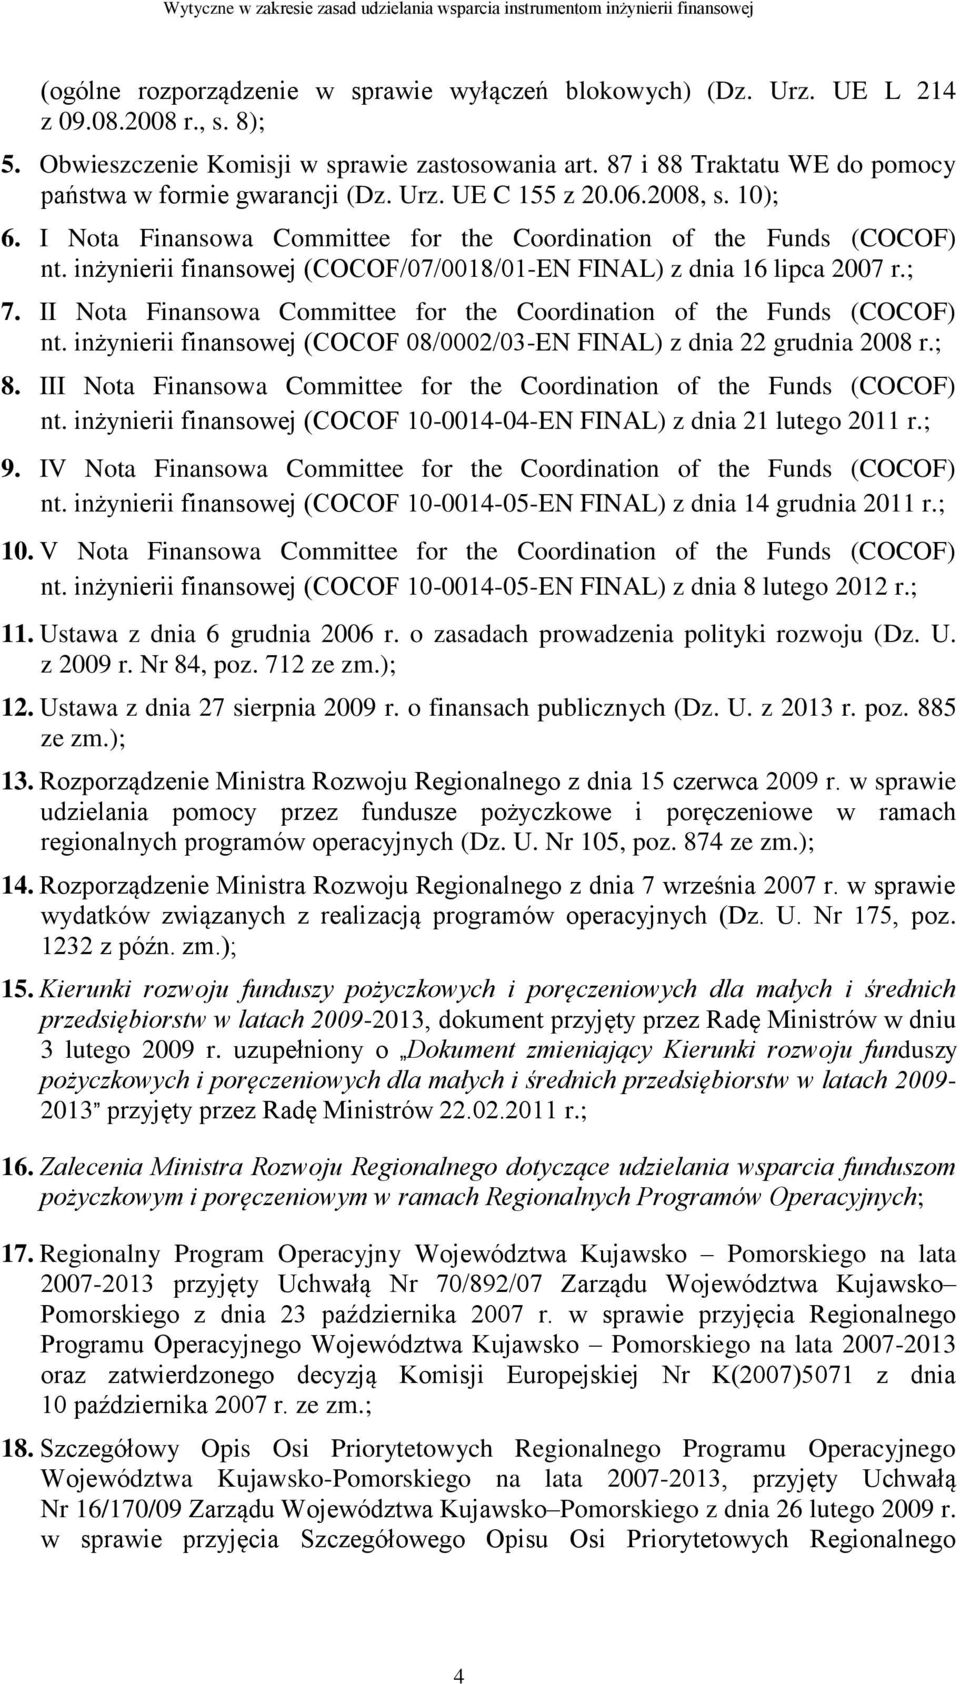 inżynierii finansowej (COCOF/07/0018/01-EN FINAL) z dnia 16 lipca 2007 r.; 7. II Nota Finansowa Committee for the Coordination of the Funds (COCOF) nt.